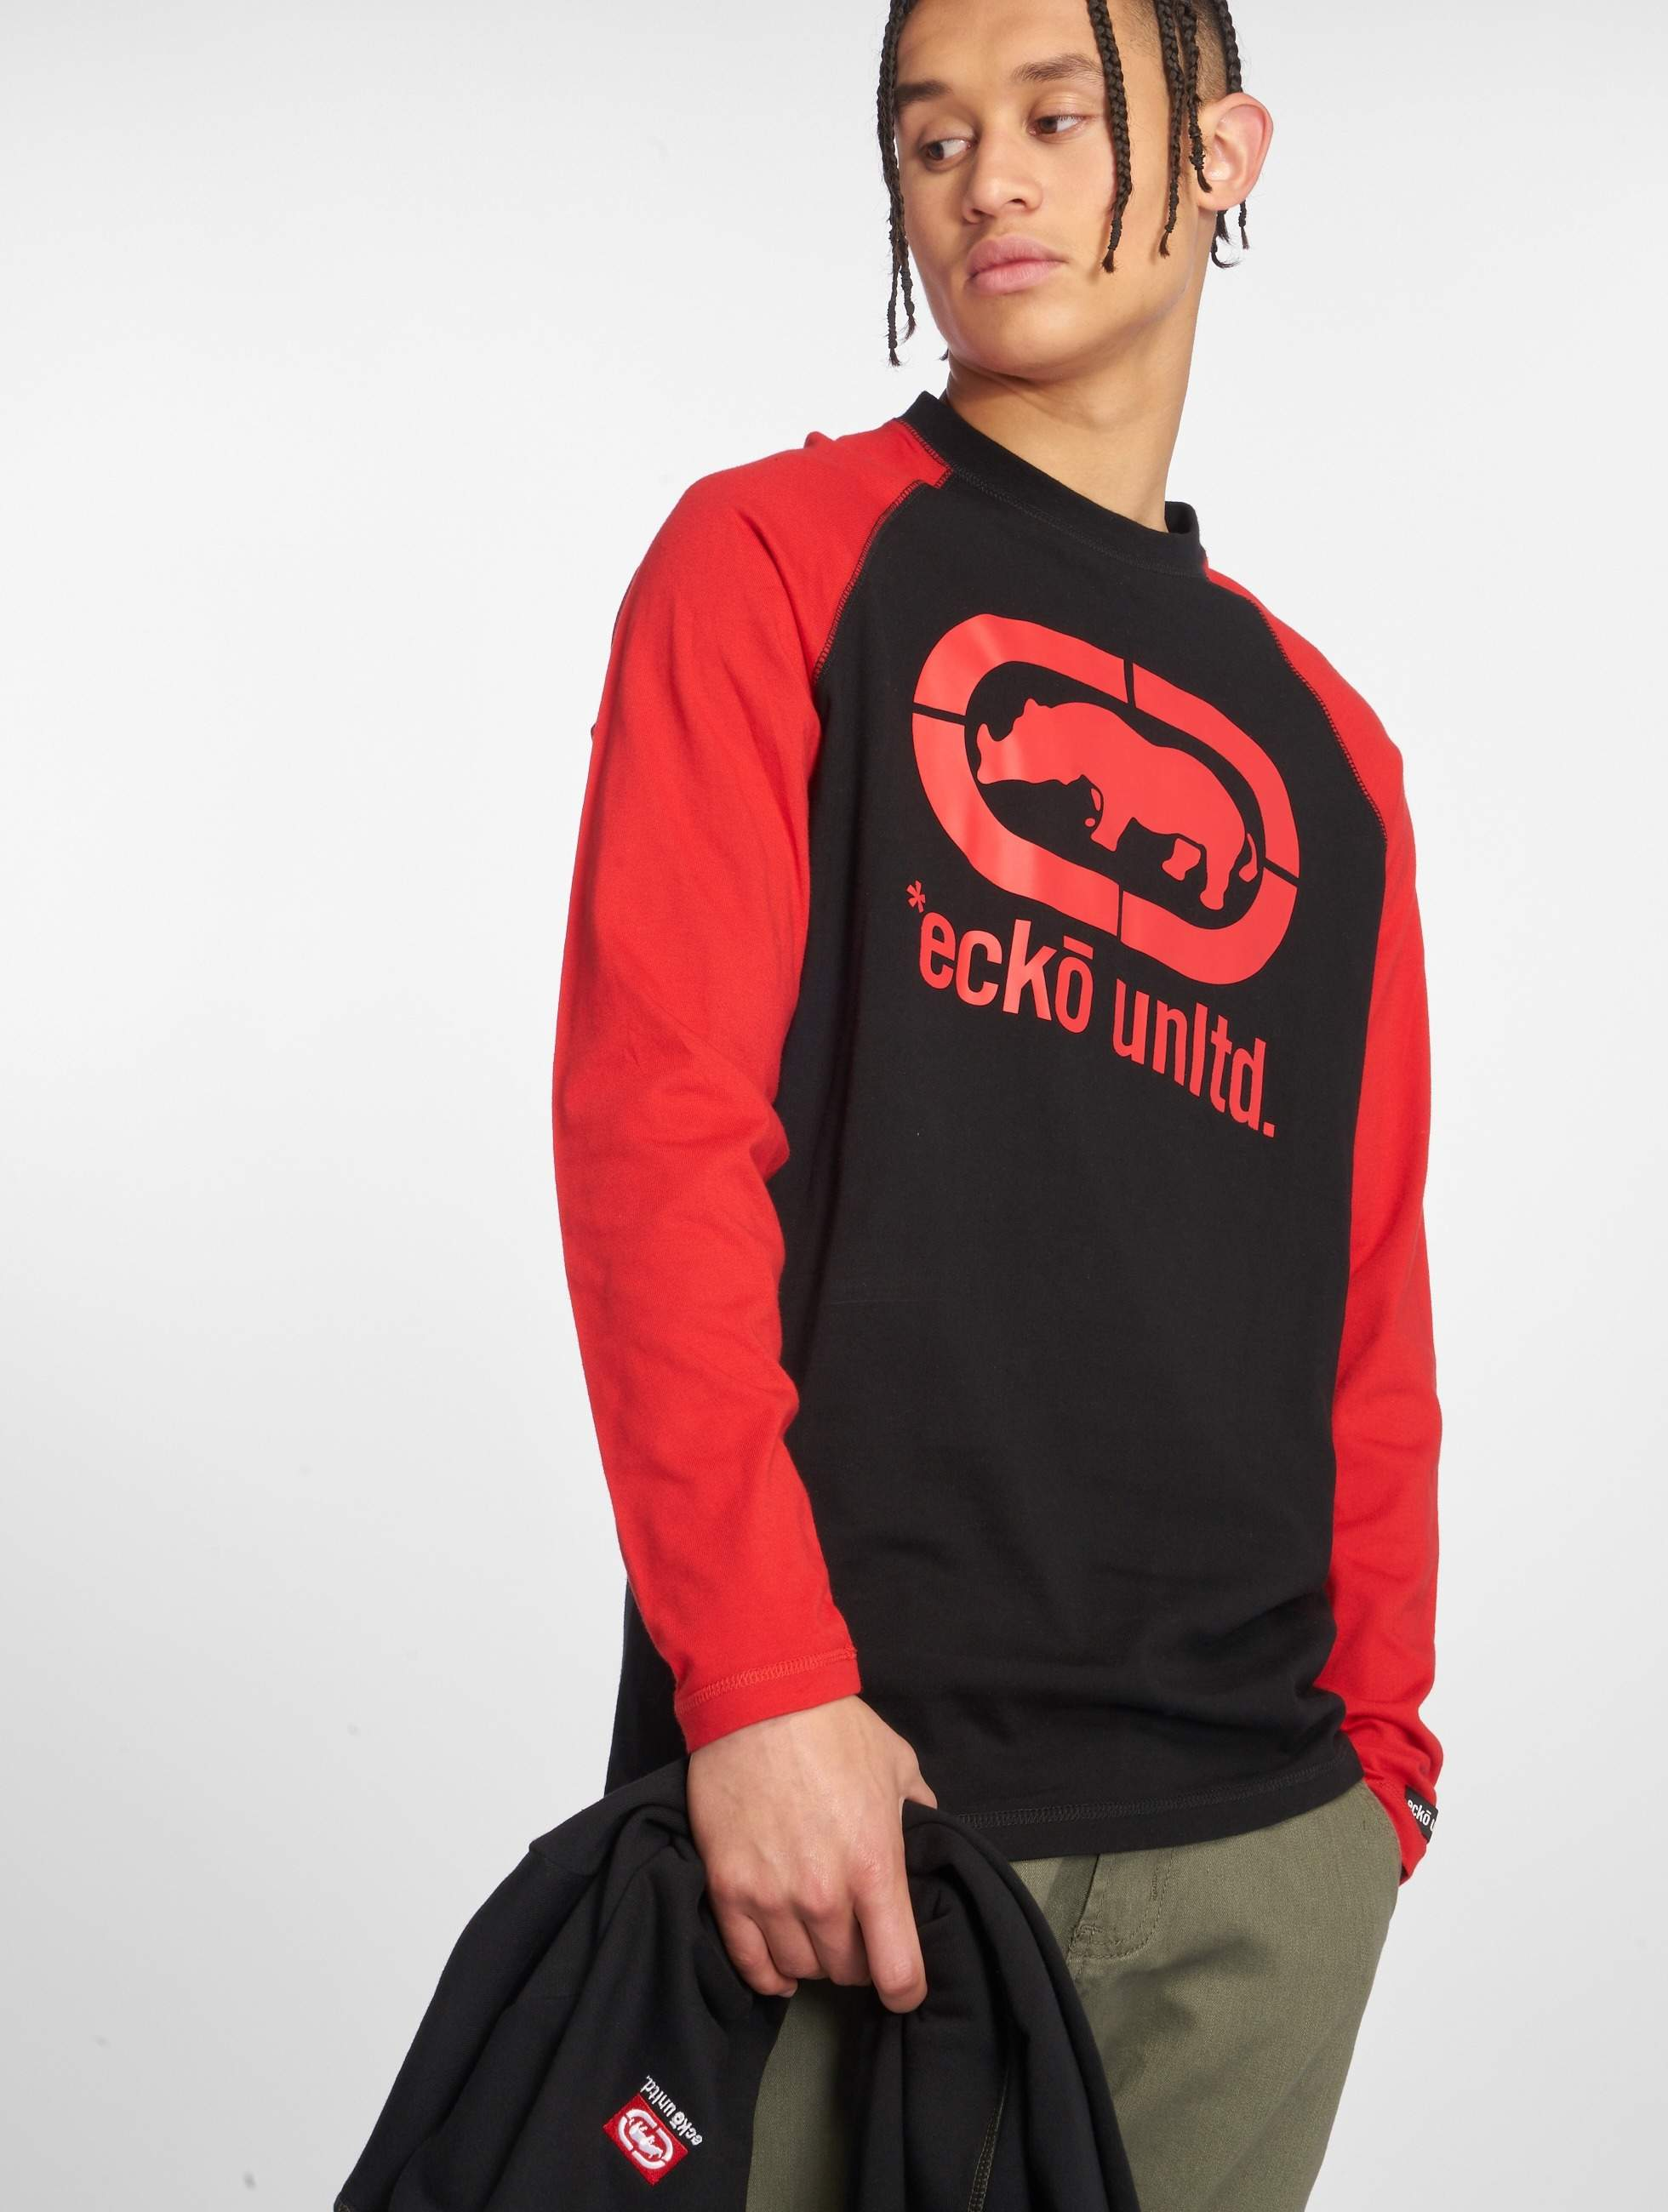 Ecko Unltd. / Longsleeve East Buddy in red 2XL